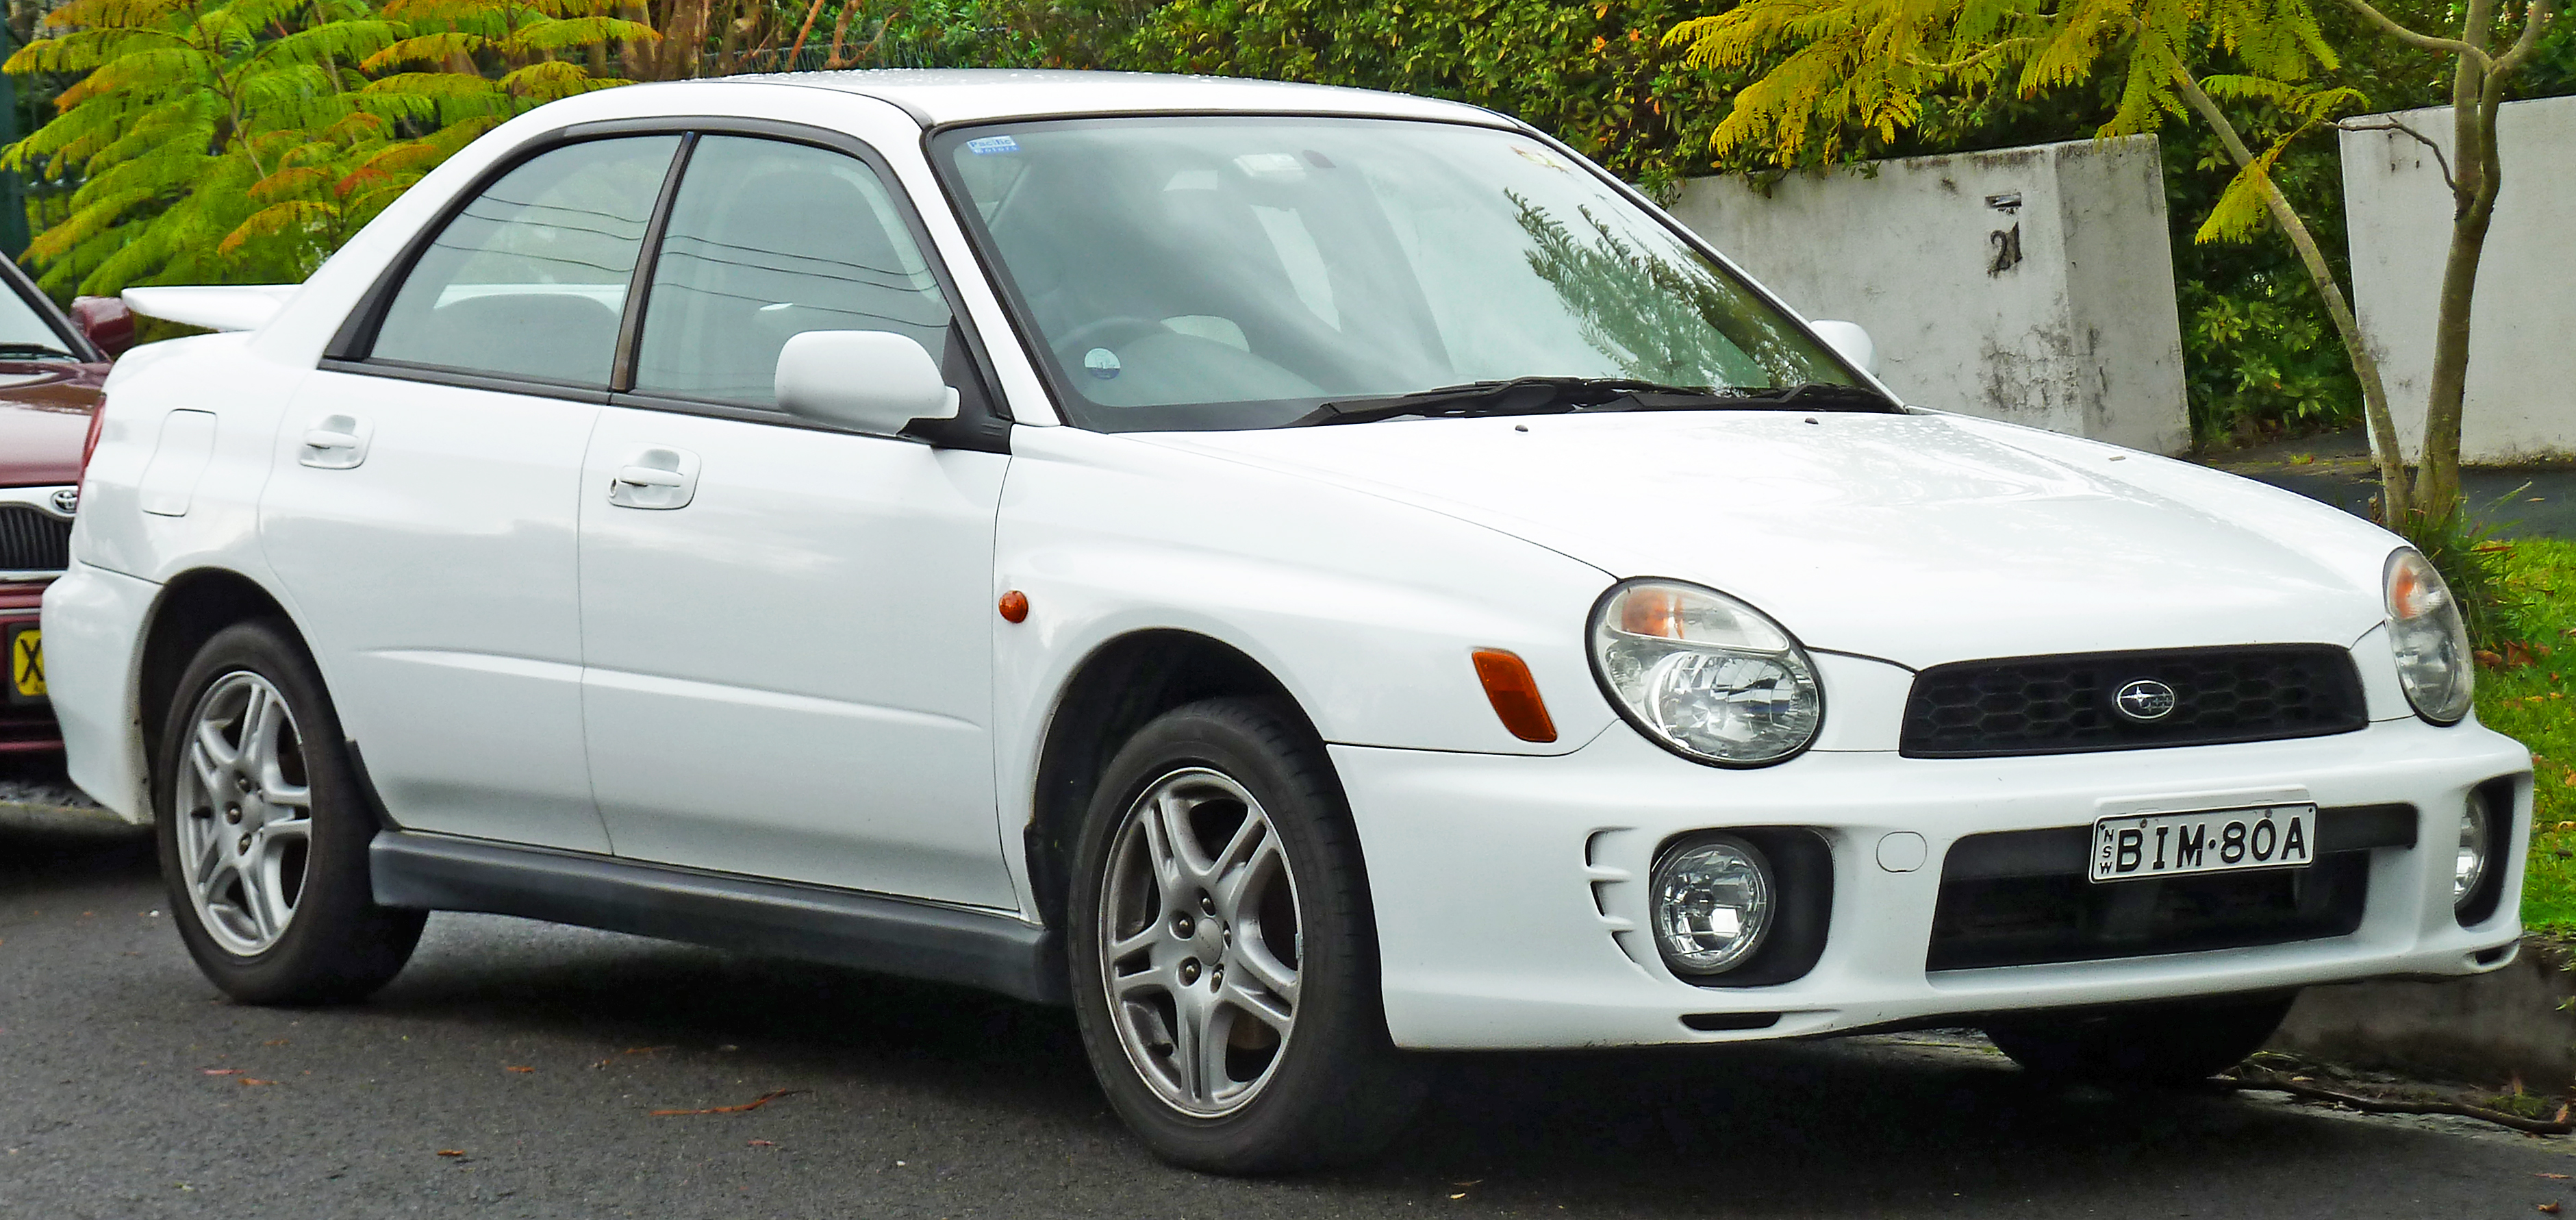 Subaru Impreza Second Generation Wikipedia